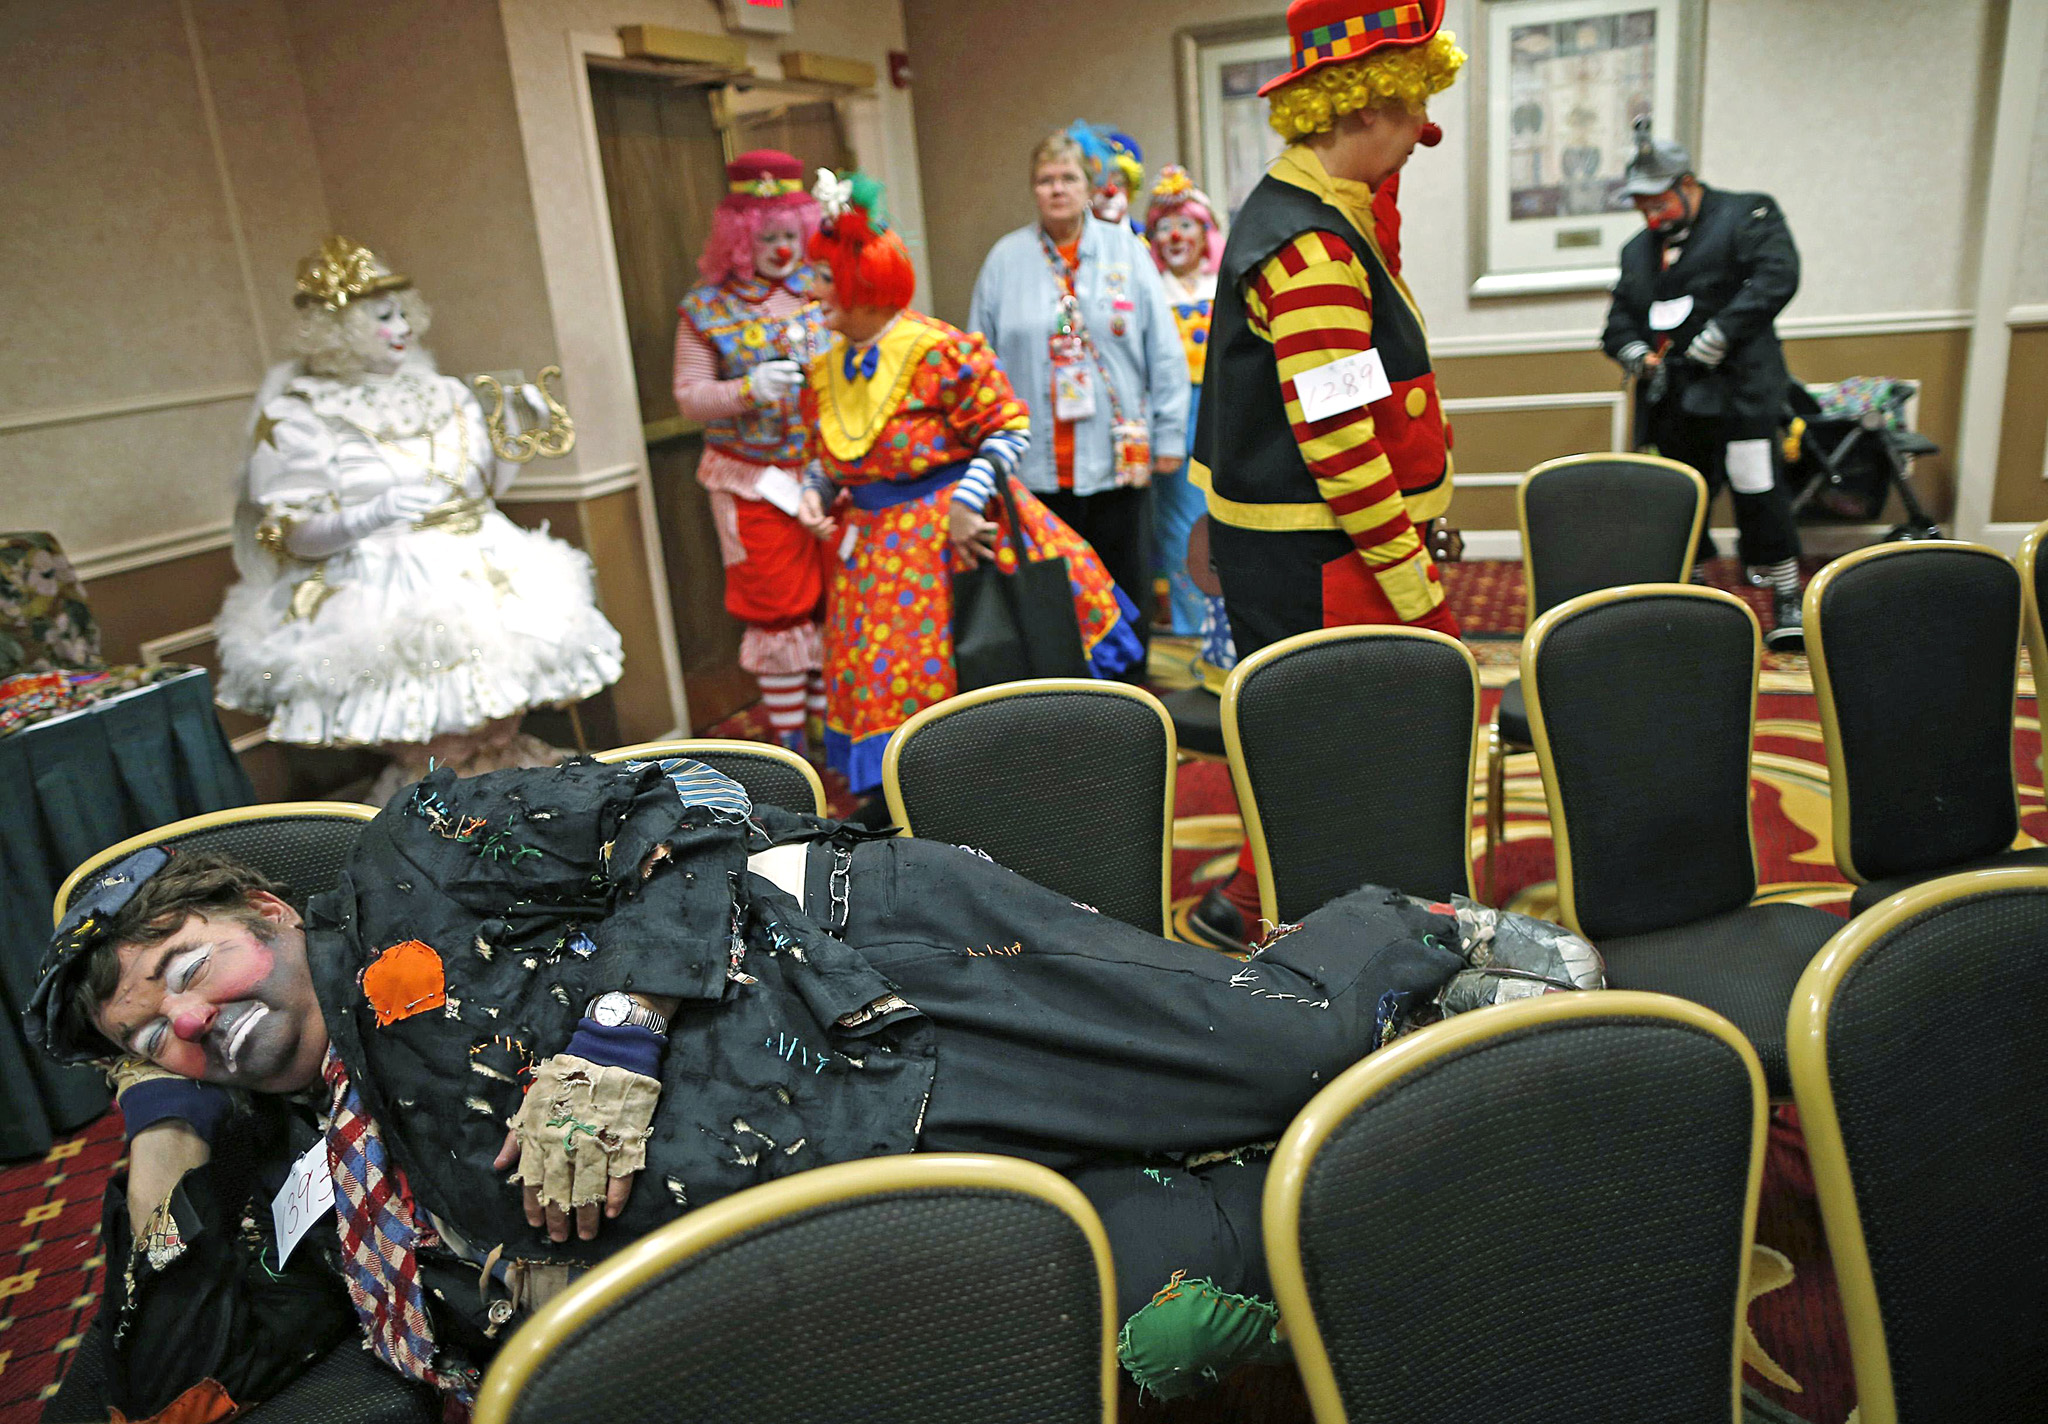 Craig Short lays on chairs as he waits for a competition to begin at the World Clown Association's annual convention in Northbrook...Craig Short lays on chairs as he waits for a competition to begin at the World Clown Association's annual convention in Northbrook, Illinois, March 26, 2014. Hundreds of clown performers from around the world gathered at the event to attend seminars, performances, and competitions. Picture taken March 26, 2014.  REUTERS/Jim Young